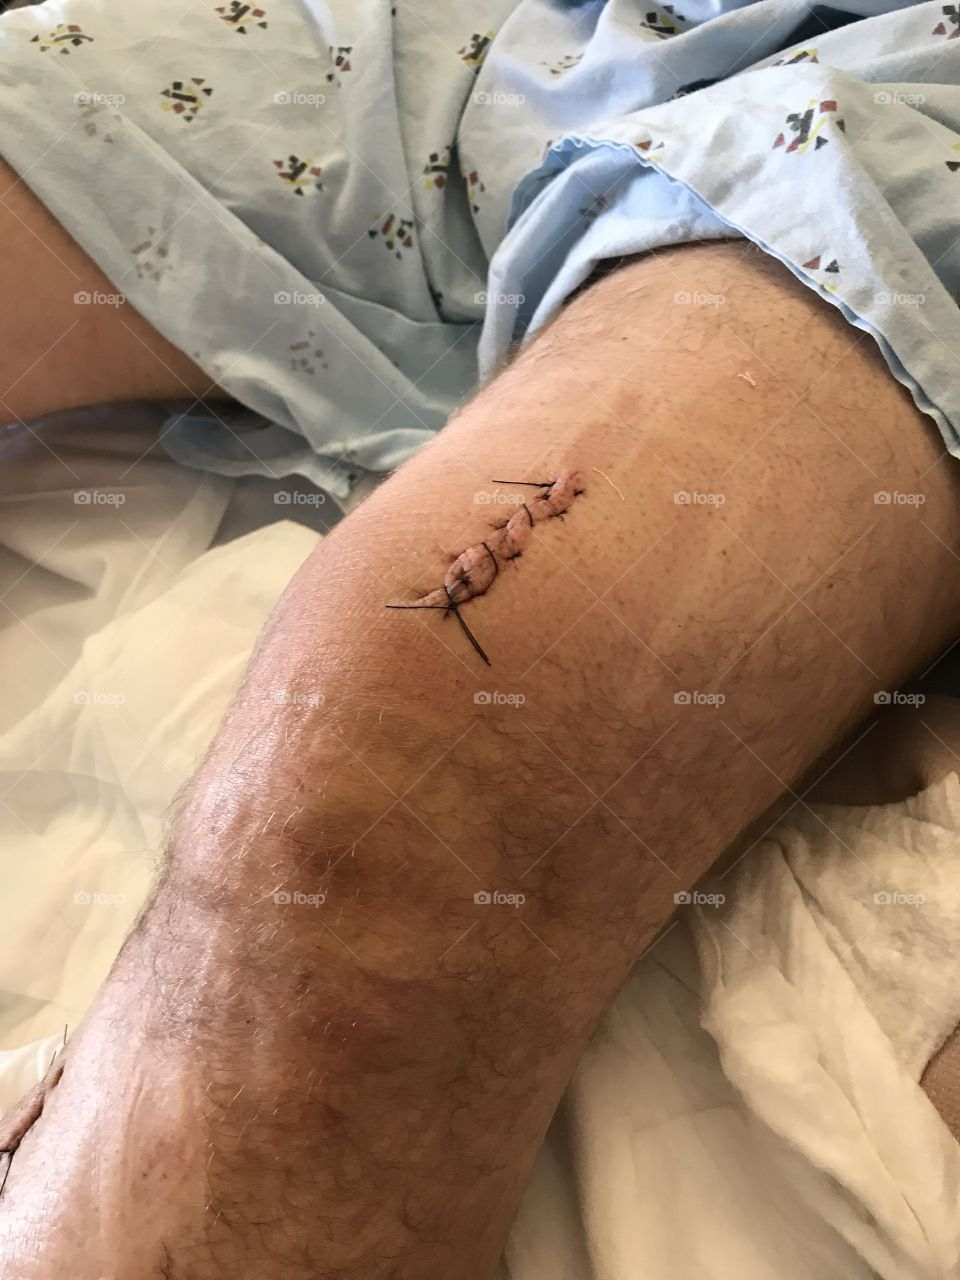 Stitches above the knee